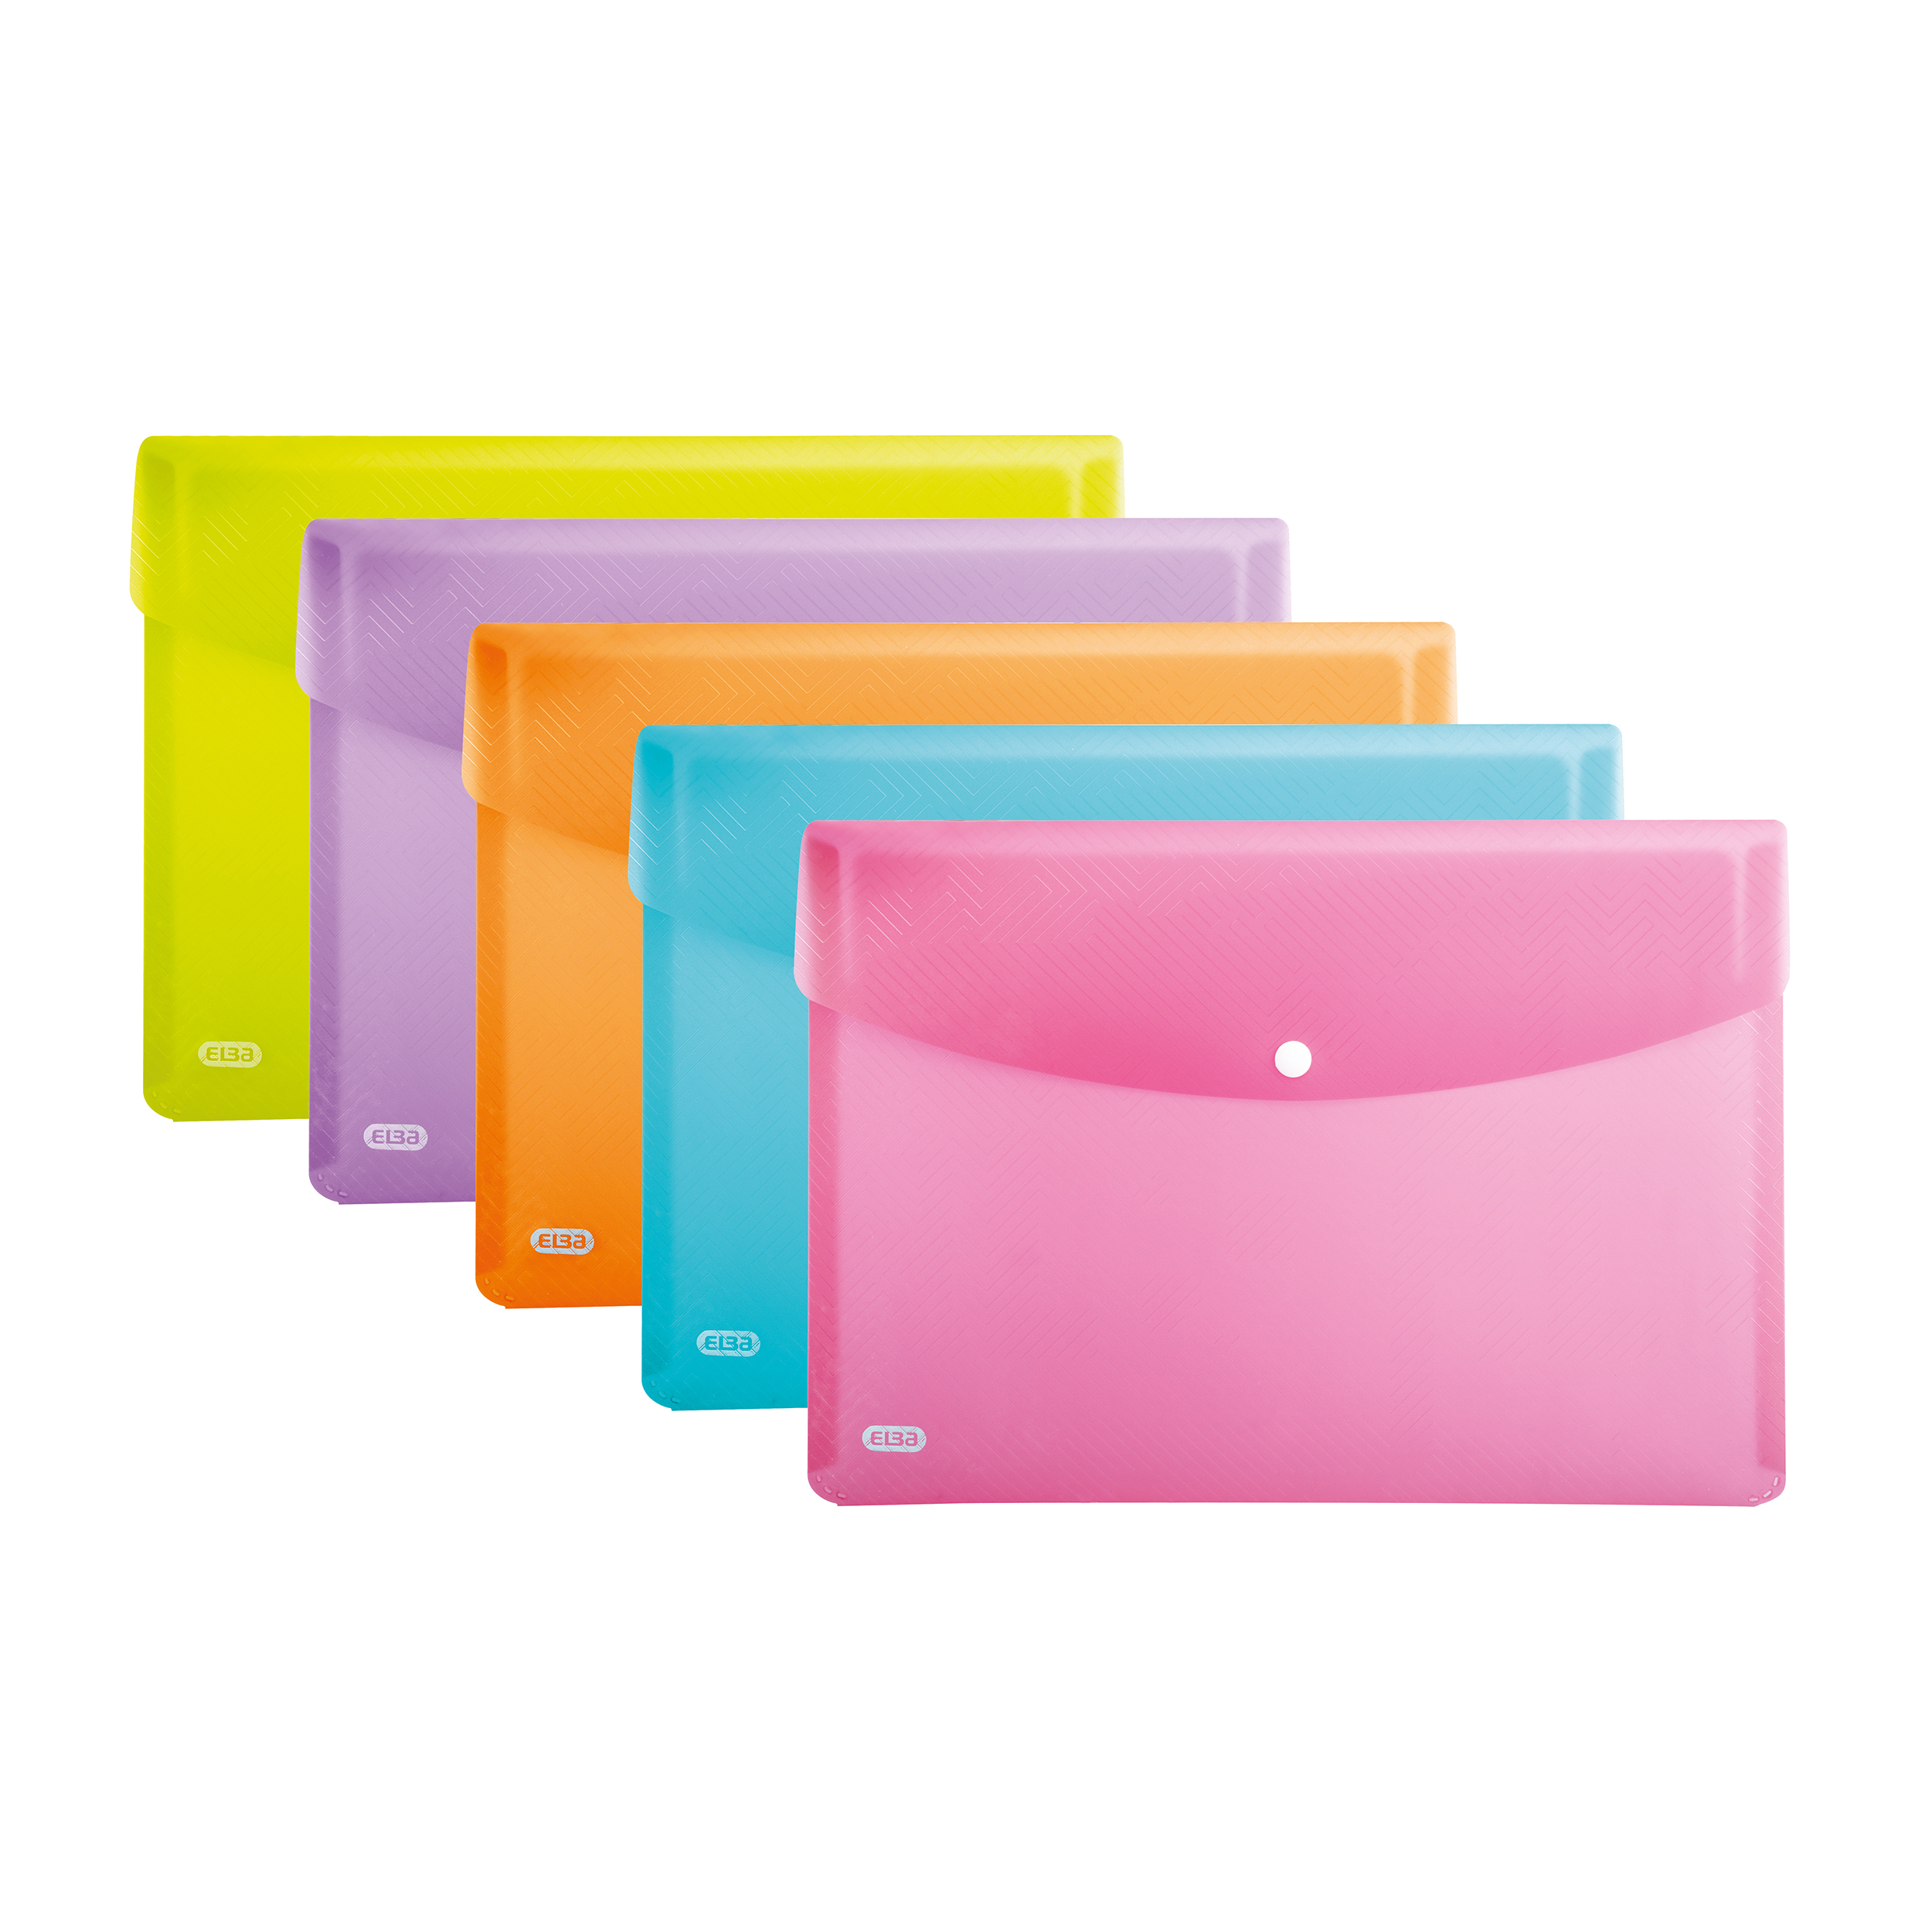 Popper Wallets Elba Translucent Wallets Polypropylene Stud Fastening A4 Translucent Astd Ref 400102032 Pack 5